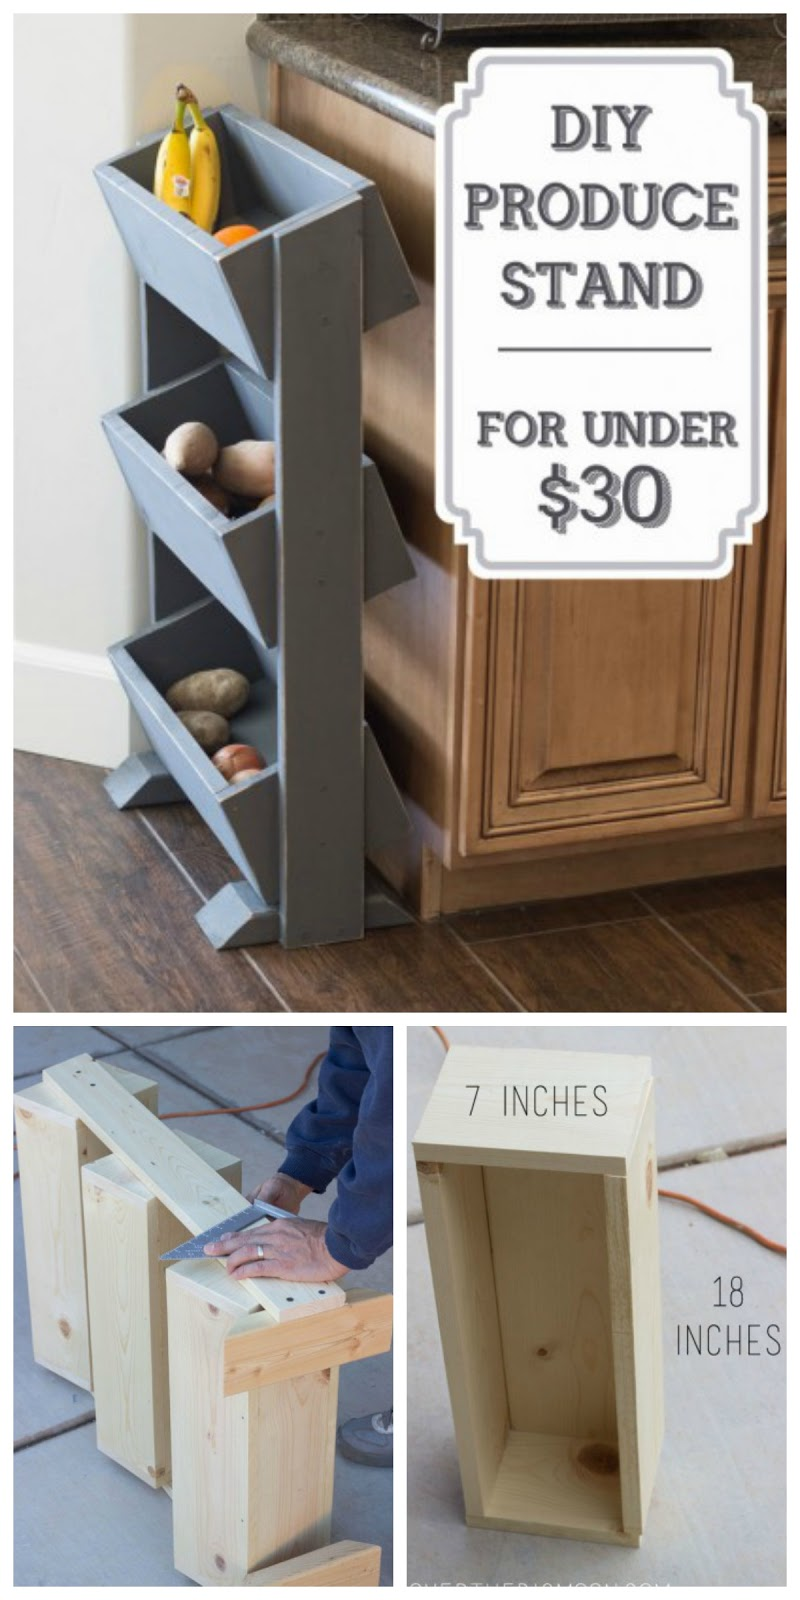 Diy kitchen produce stand for under 30 handy homemade Easy diy storage ideas for small homes